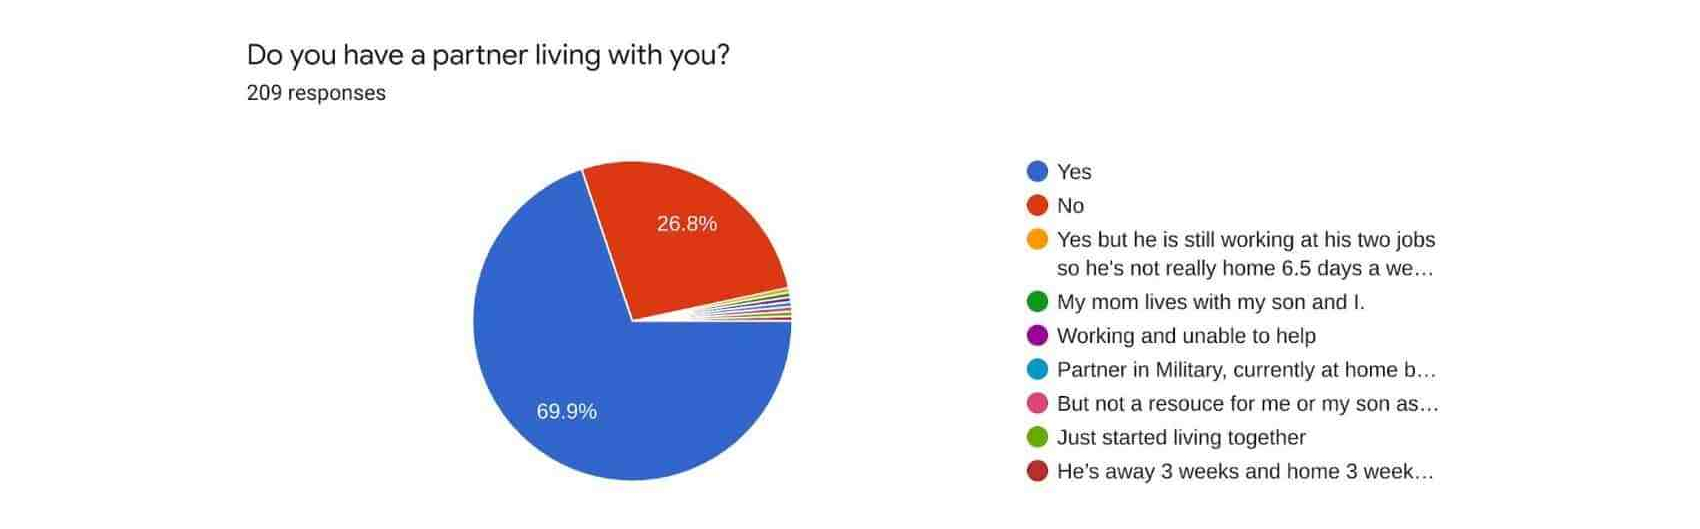 Pie chart showing whether or not respondents have a partner living with them.